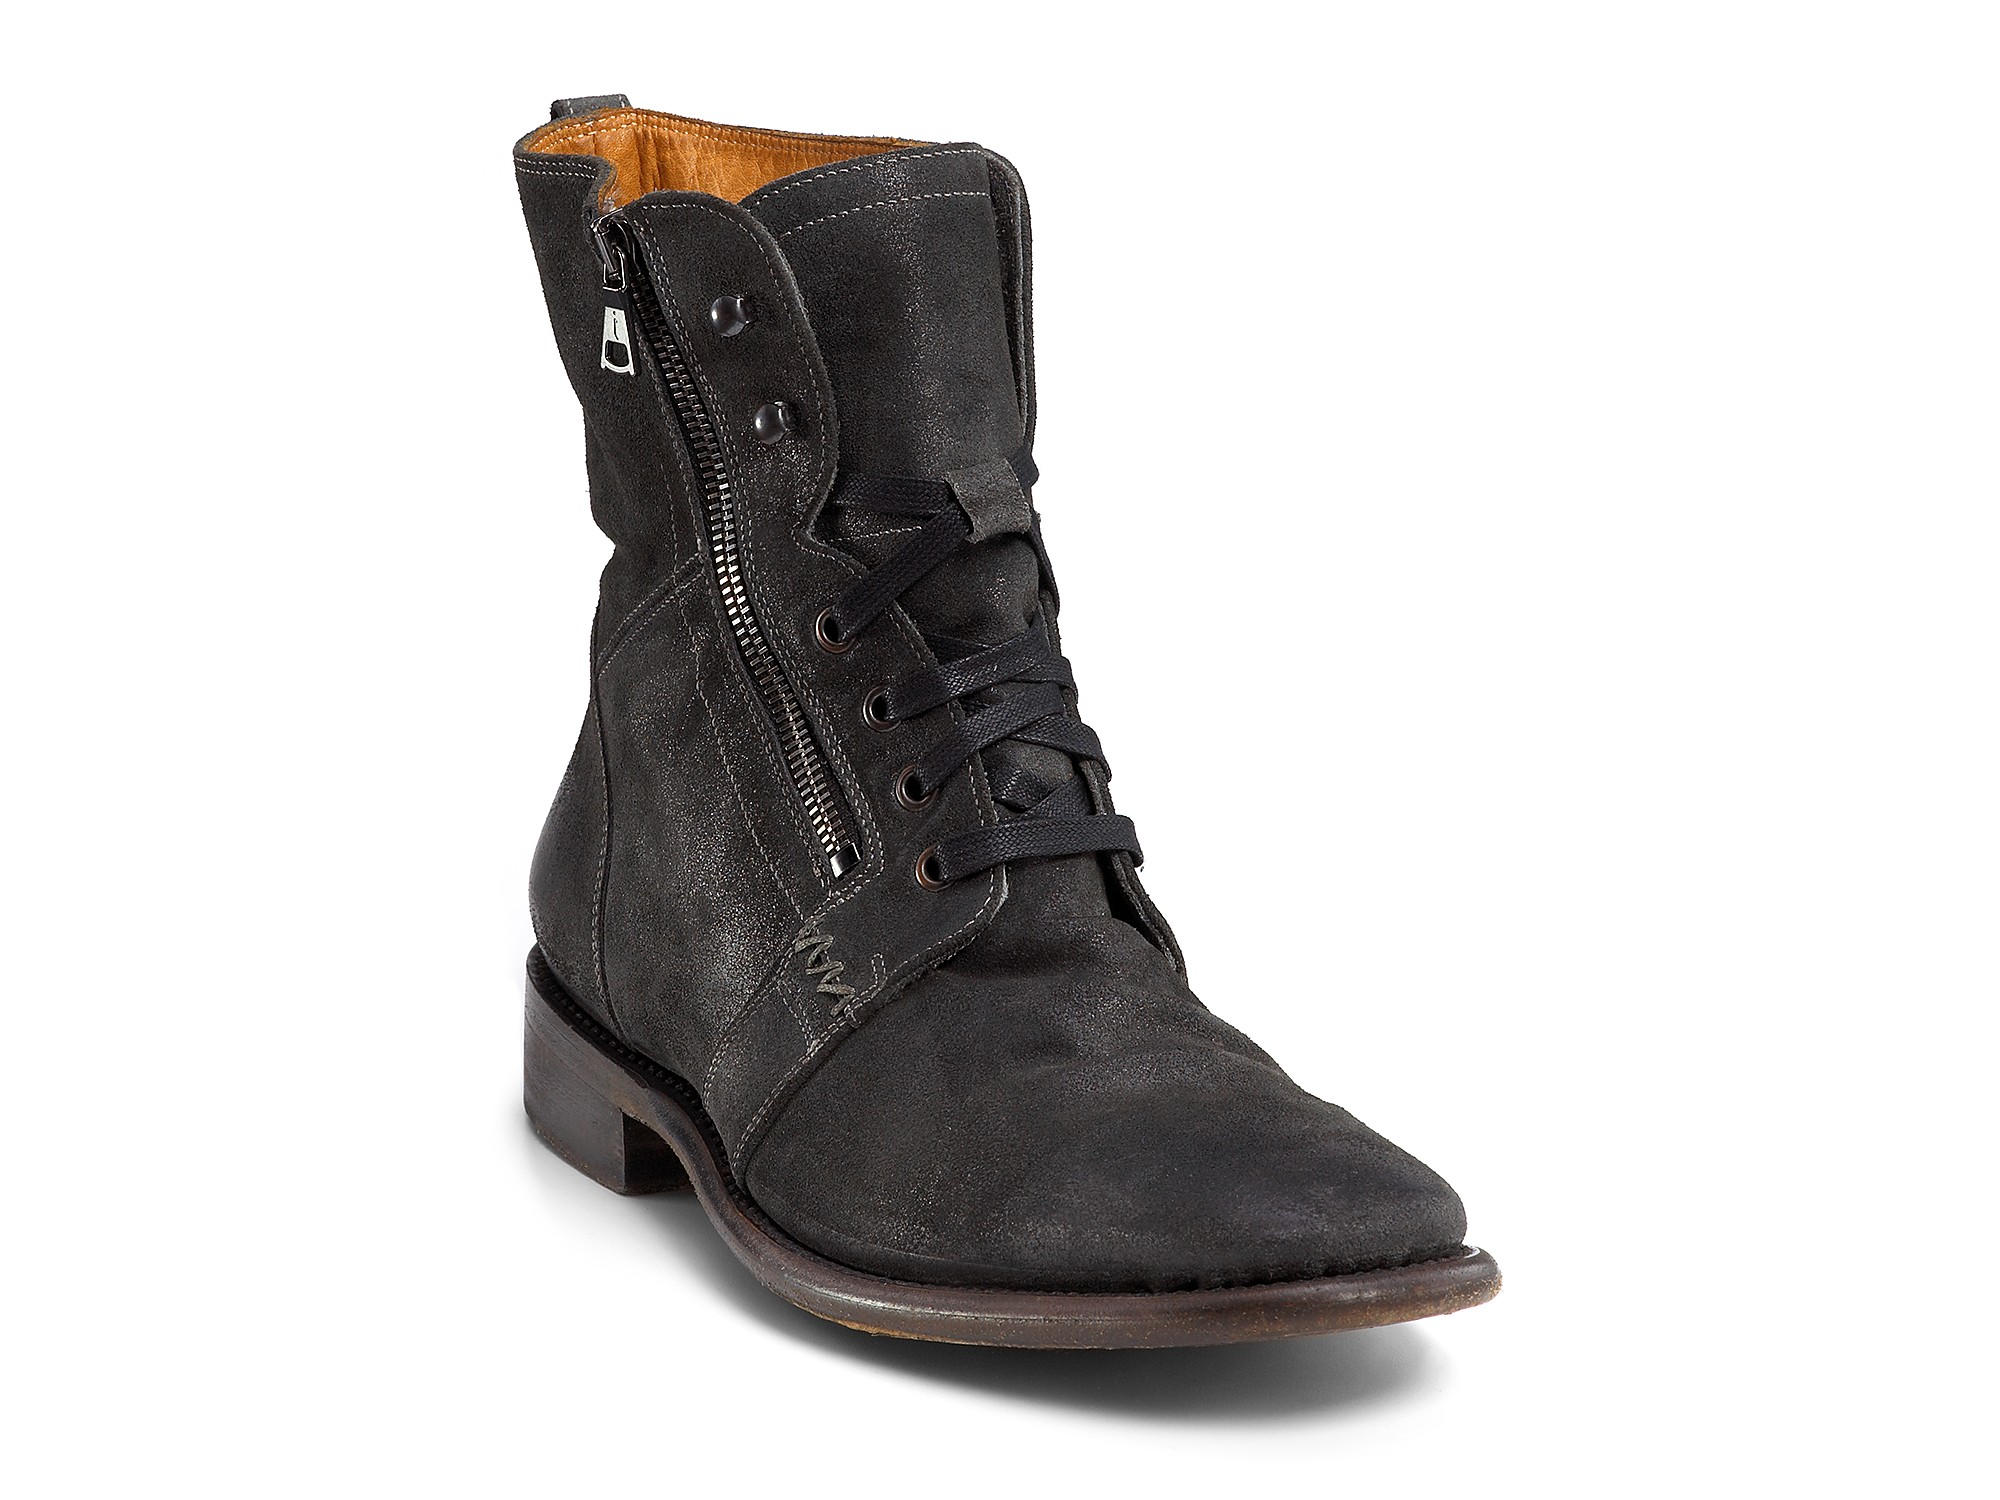 varvatos ago suede side zip boots in blue for